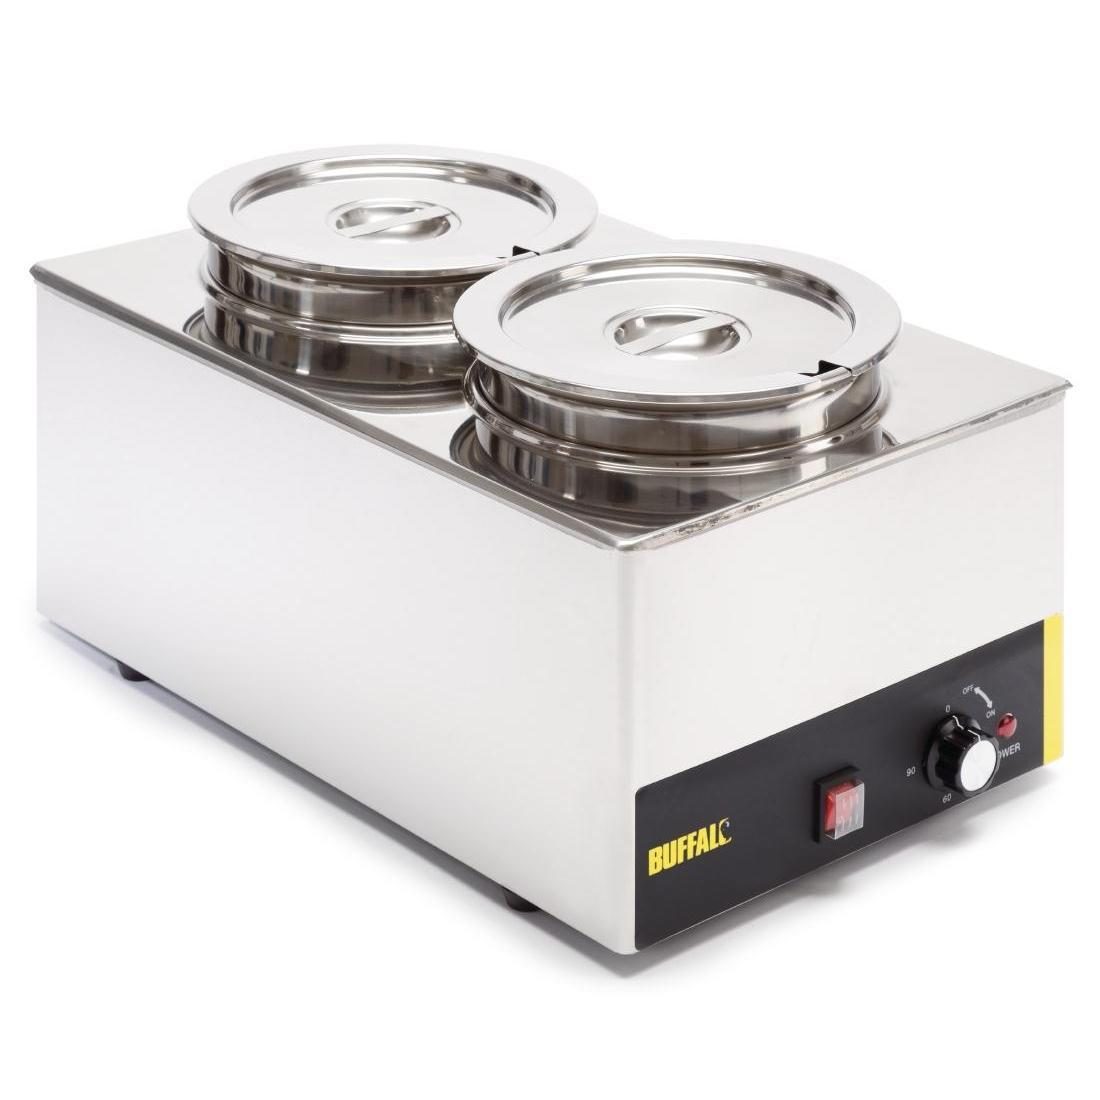 Buffalo Bain Marie With Round Pots - S077